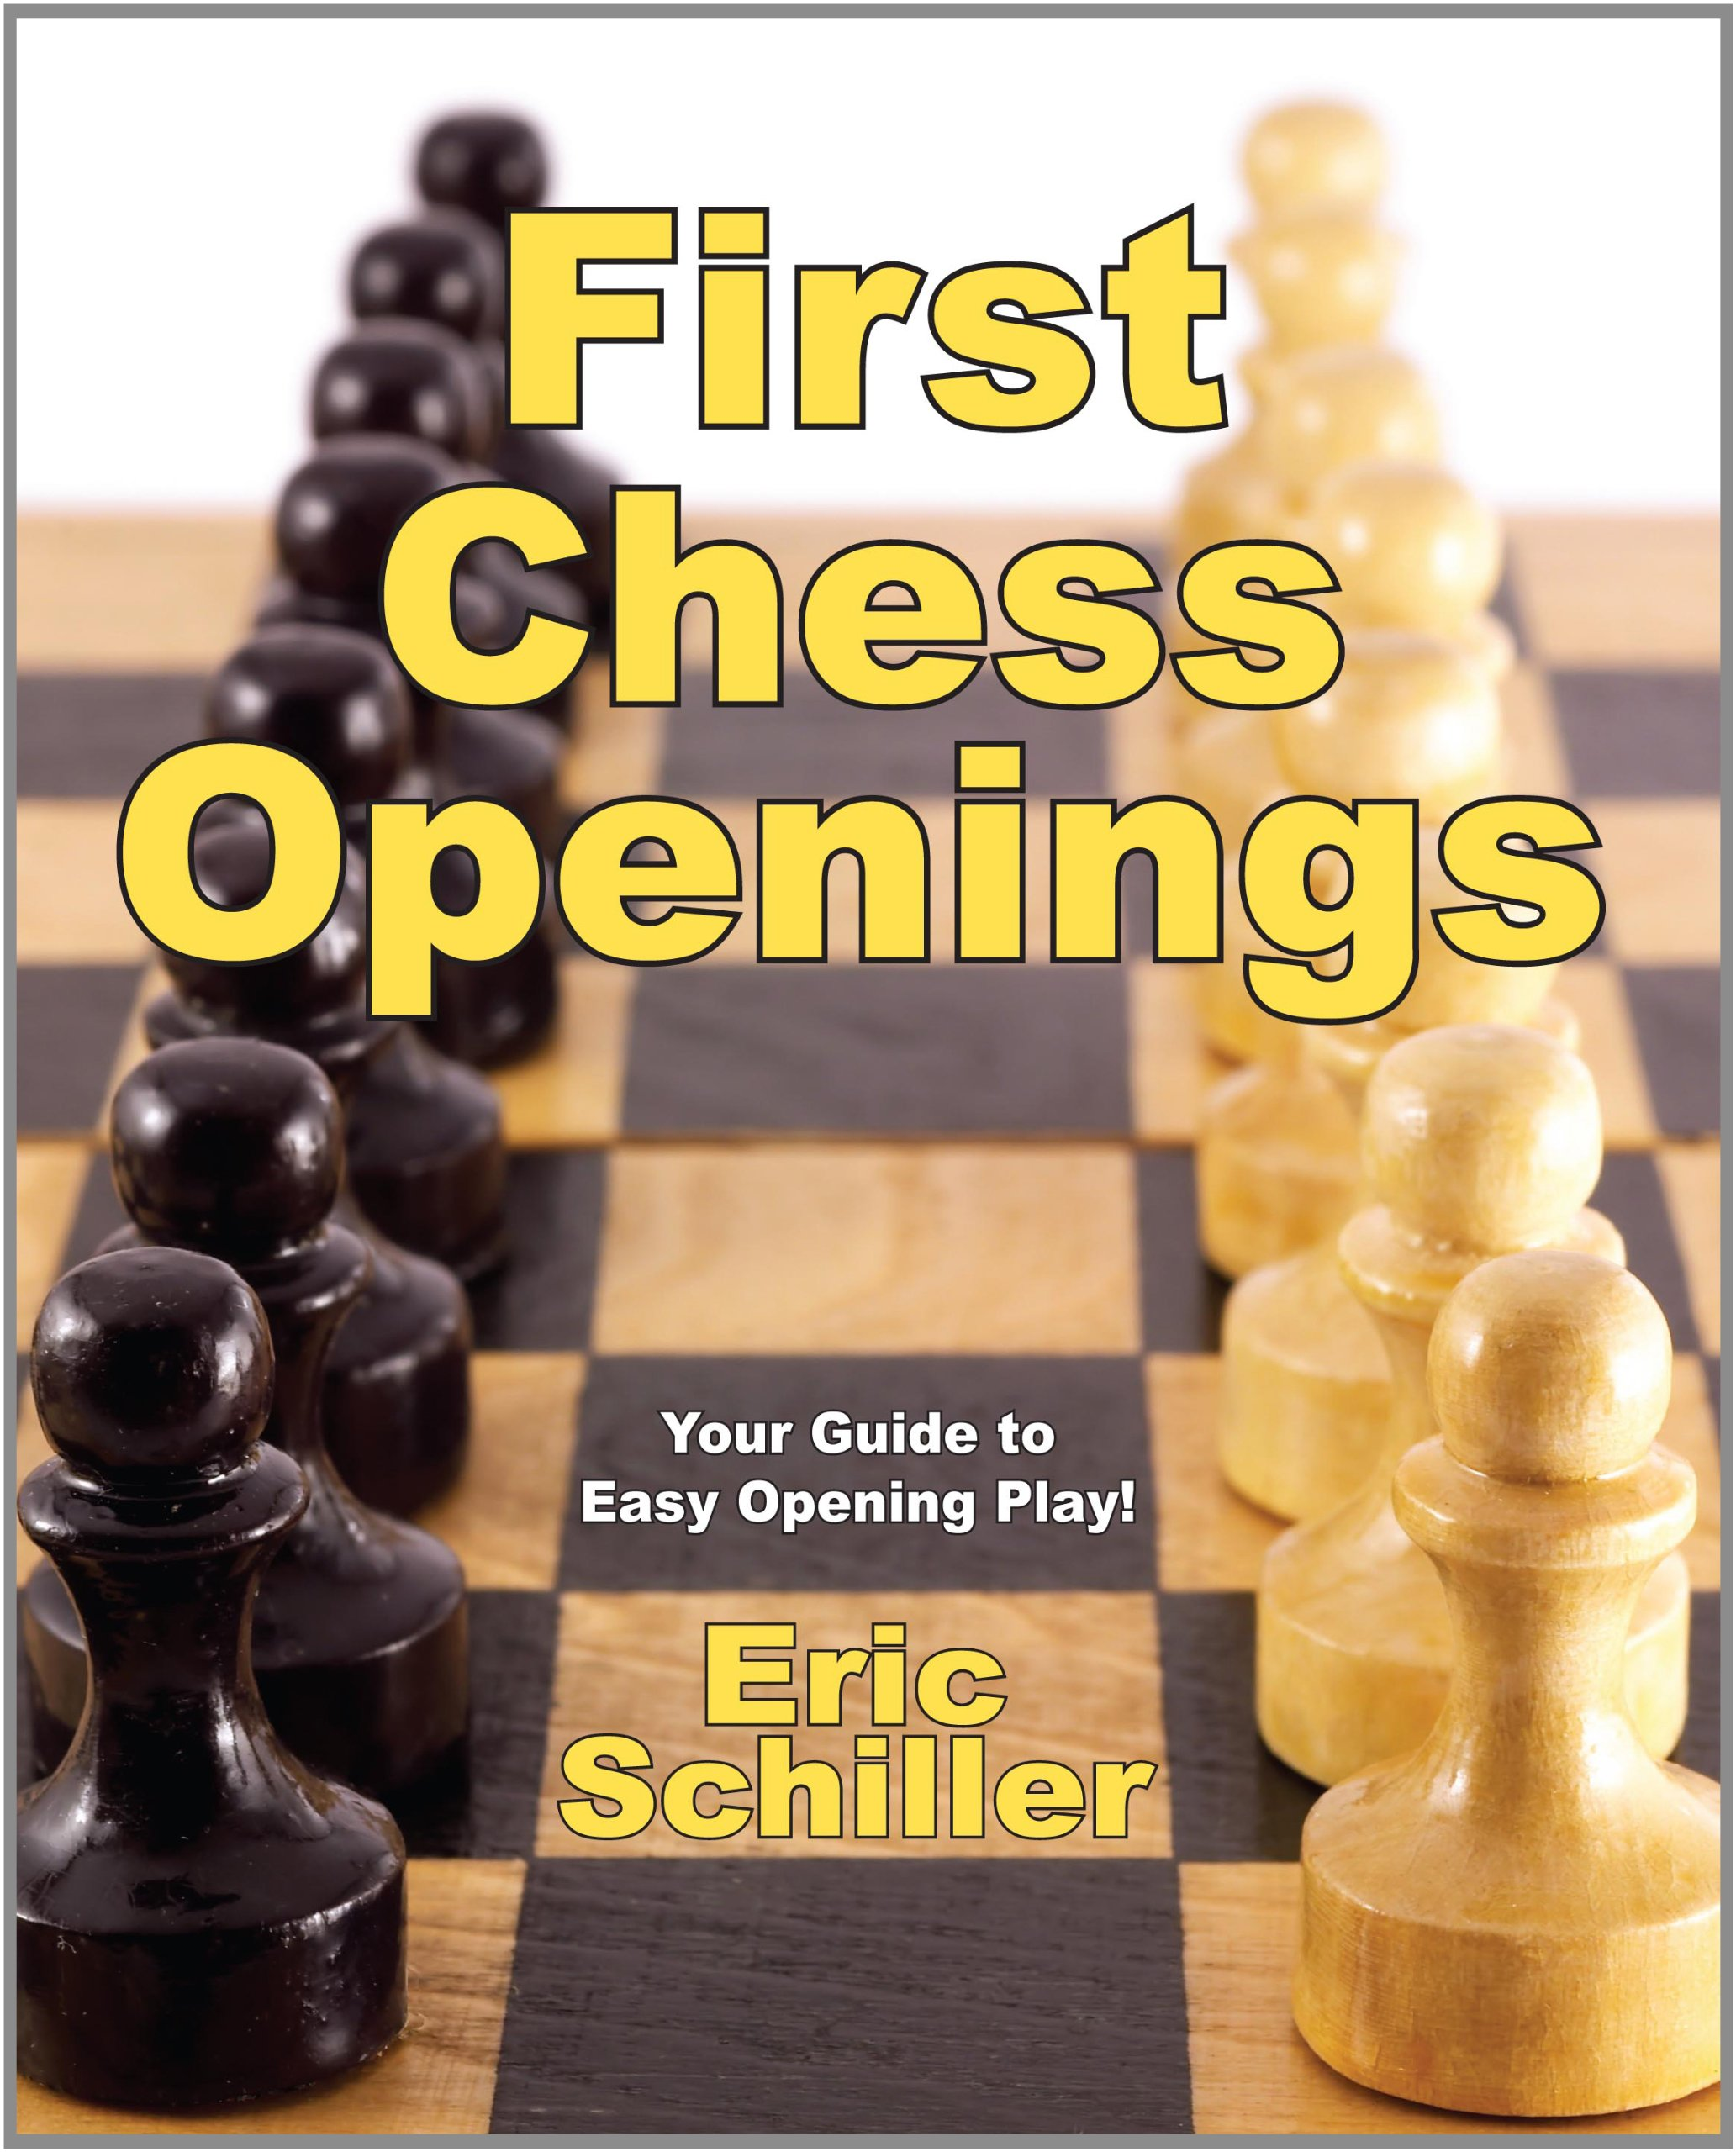 First Chess Openings Eric Schiller 9781580421522 Books Four Move Checkmate Diagram